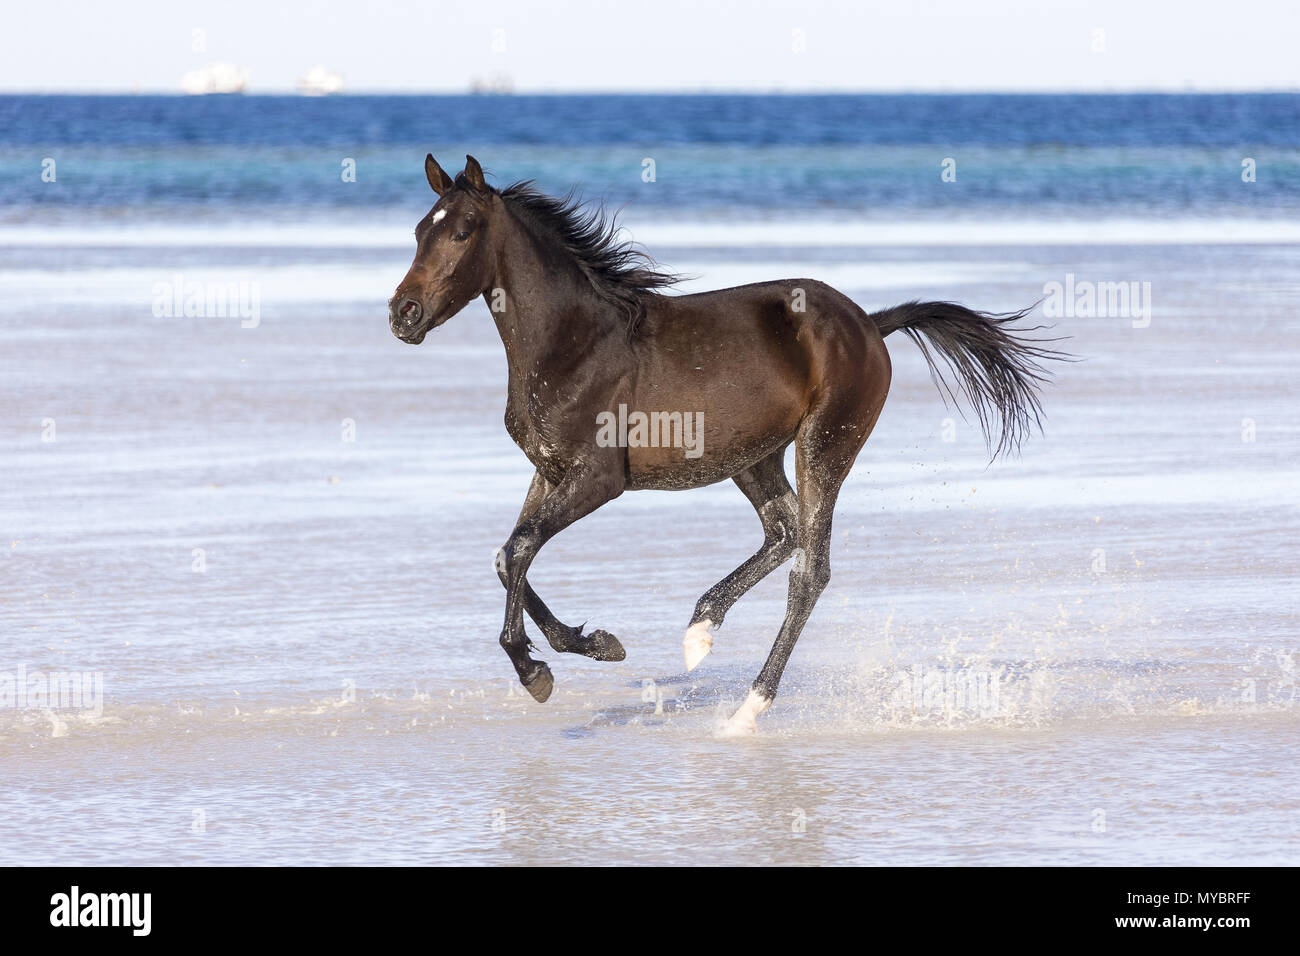 Barb horse. Bay horse galloping in shallow water. Egypt. Stock Photo